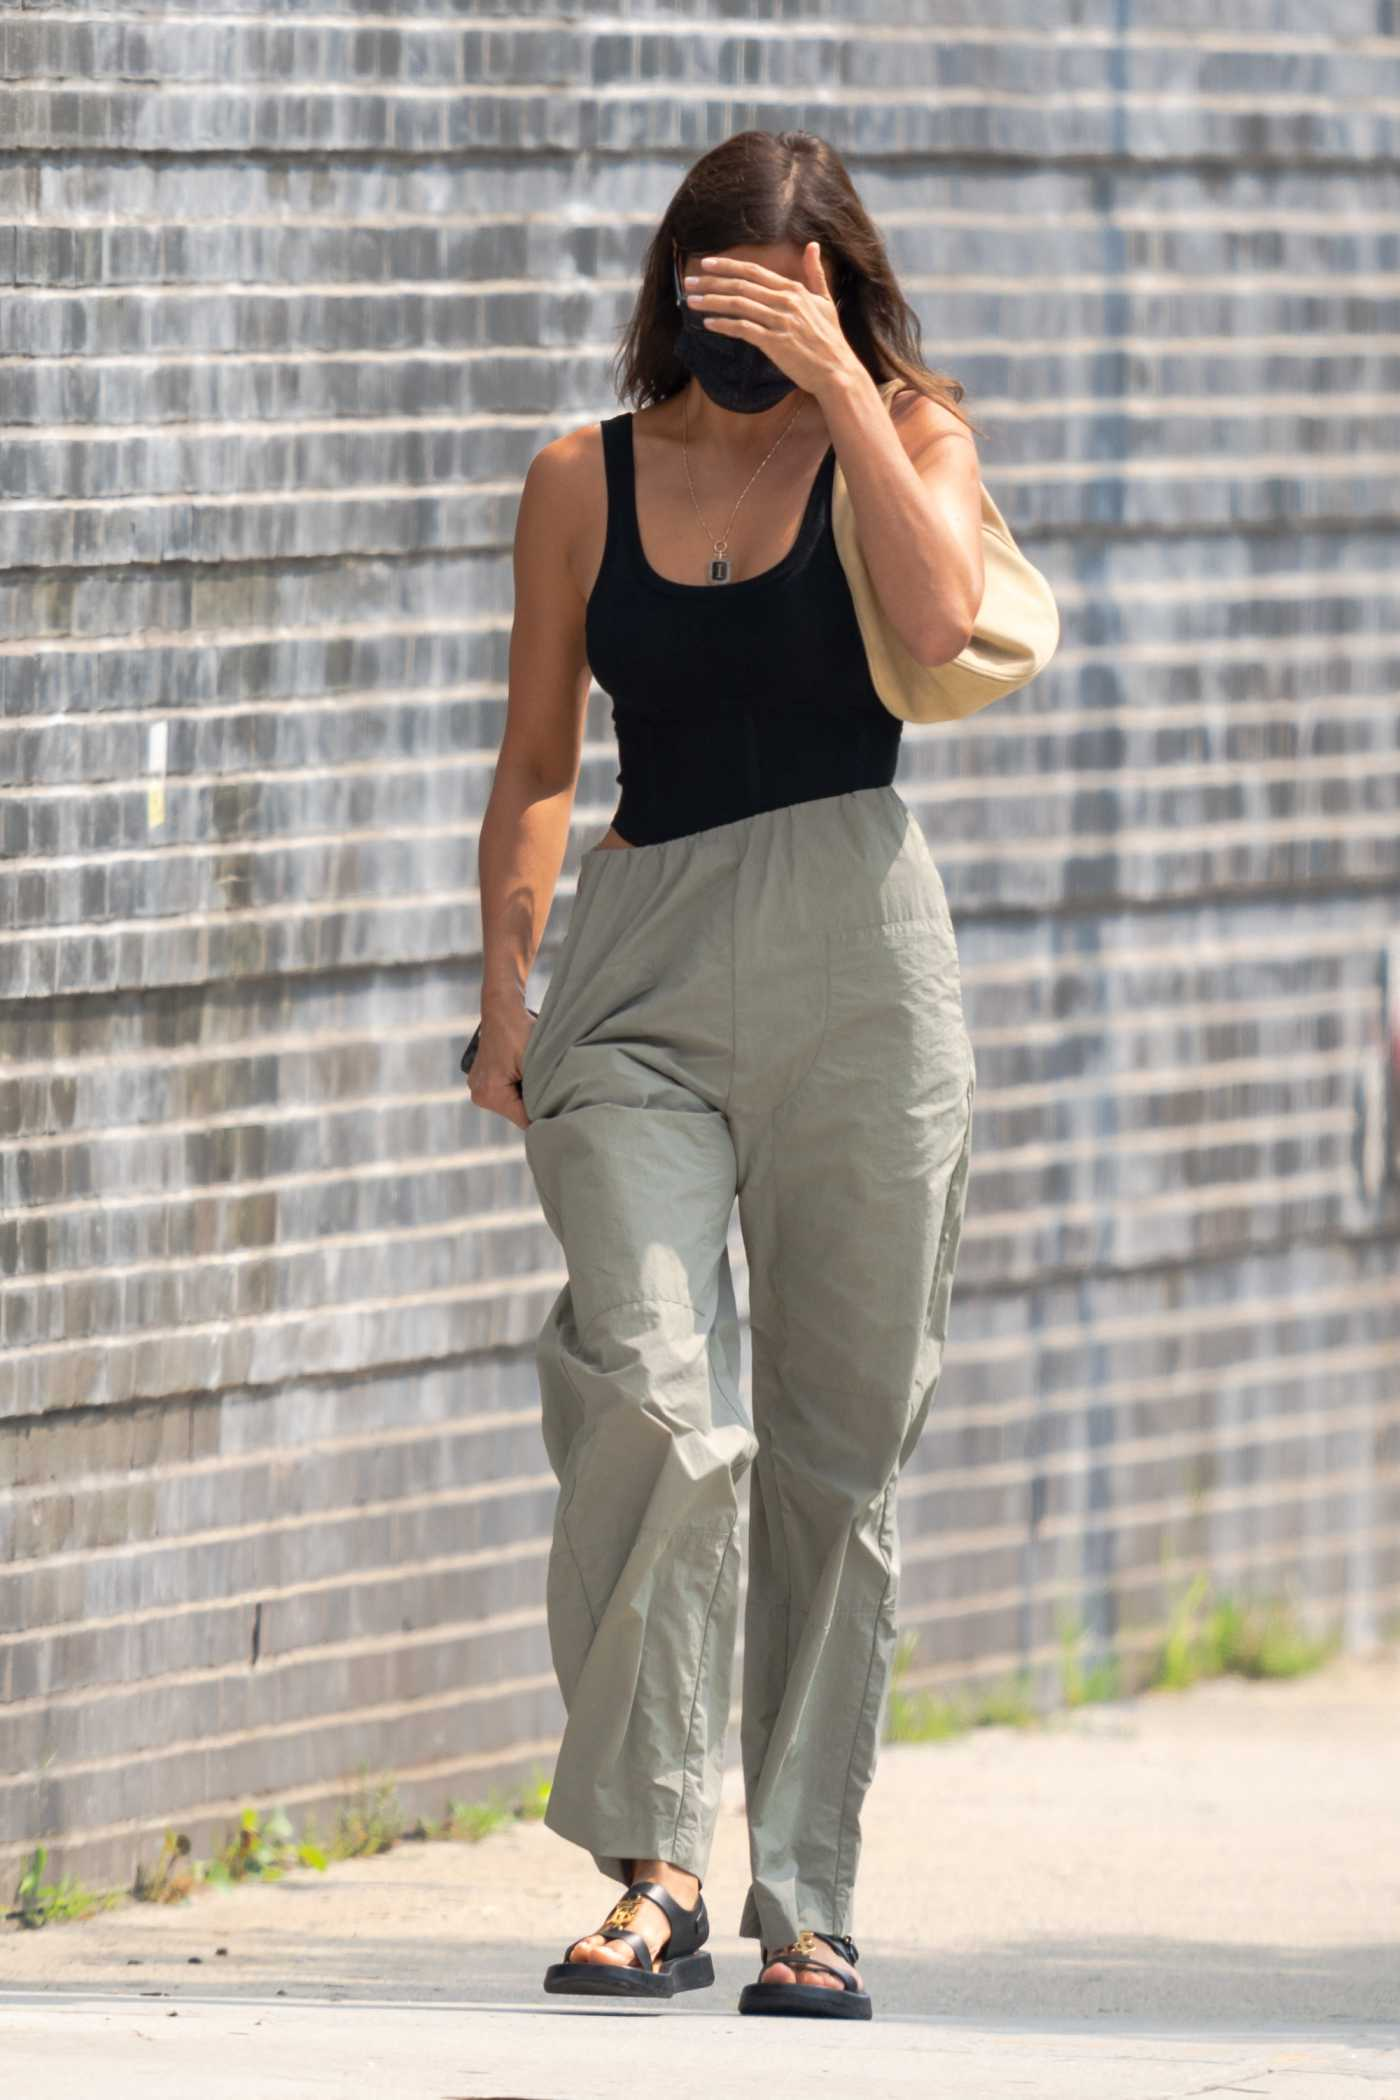 Irina Shayk in a Black Top Was Seen Out in West Village in New York 08/10/2021